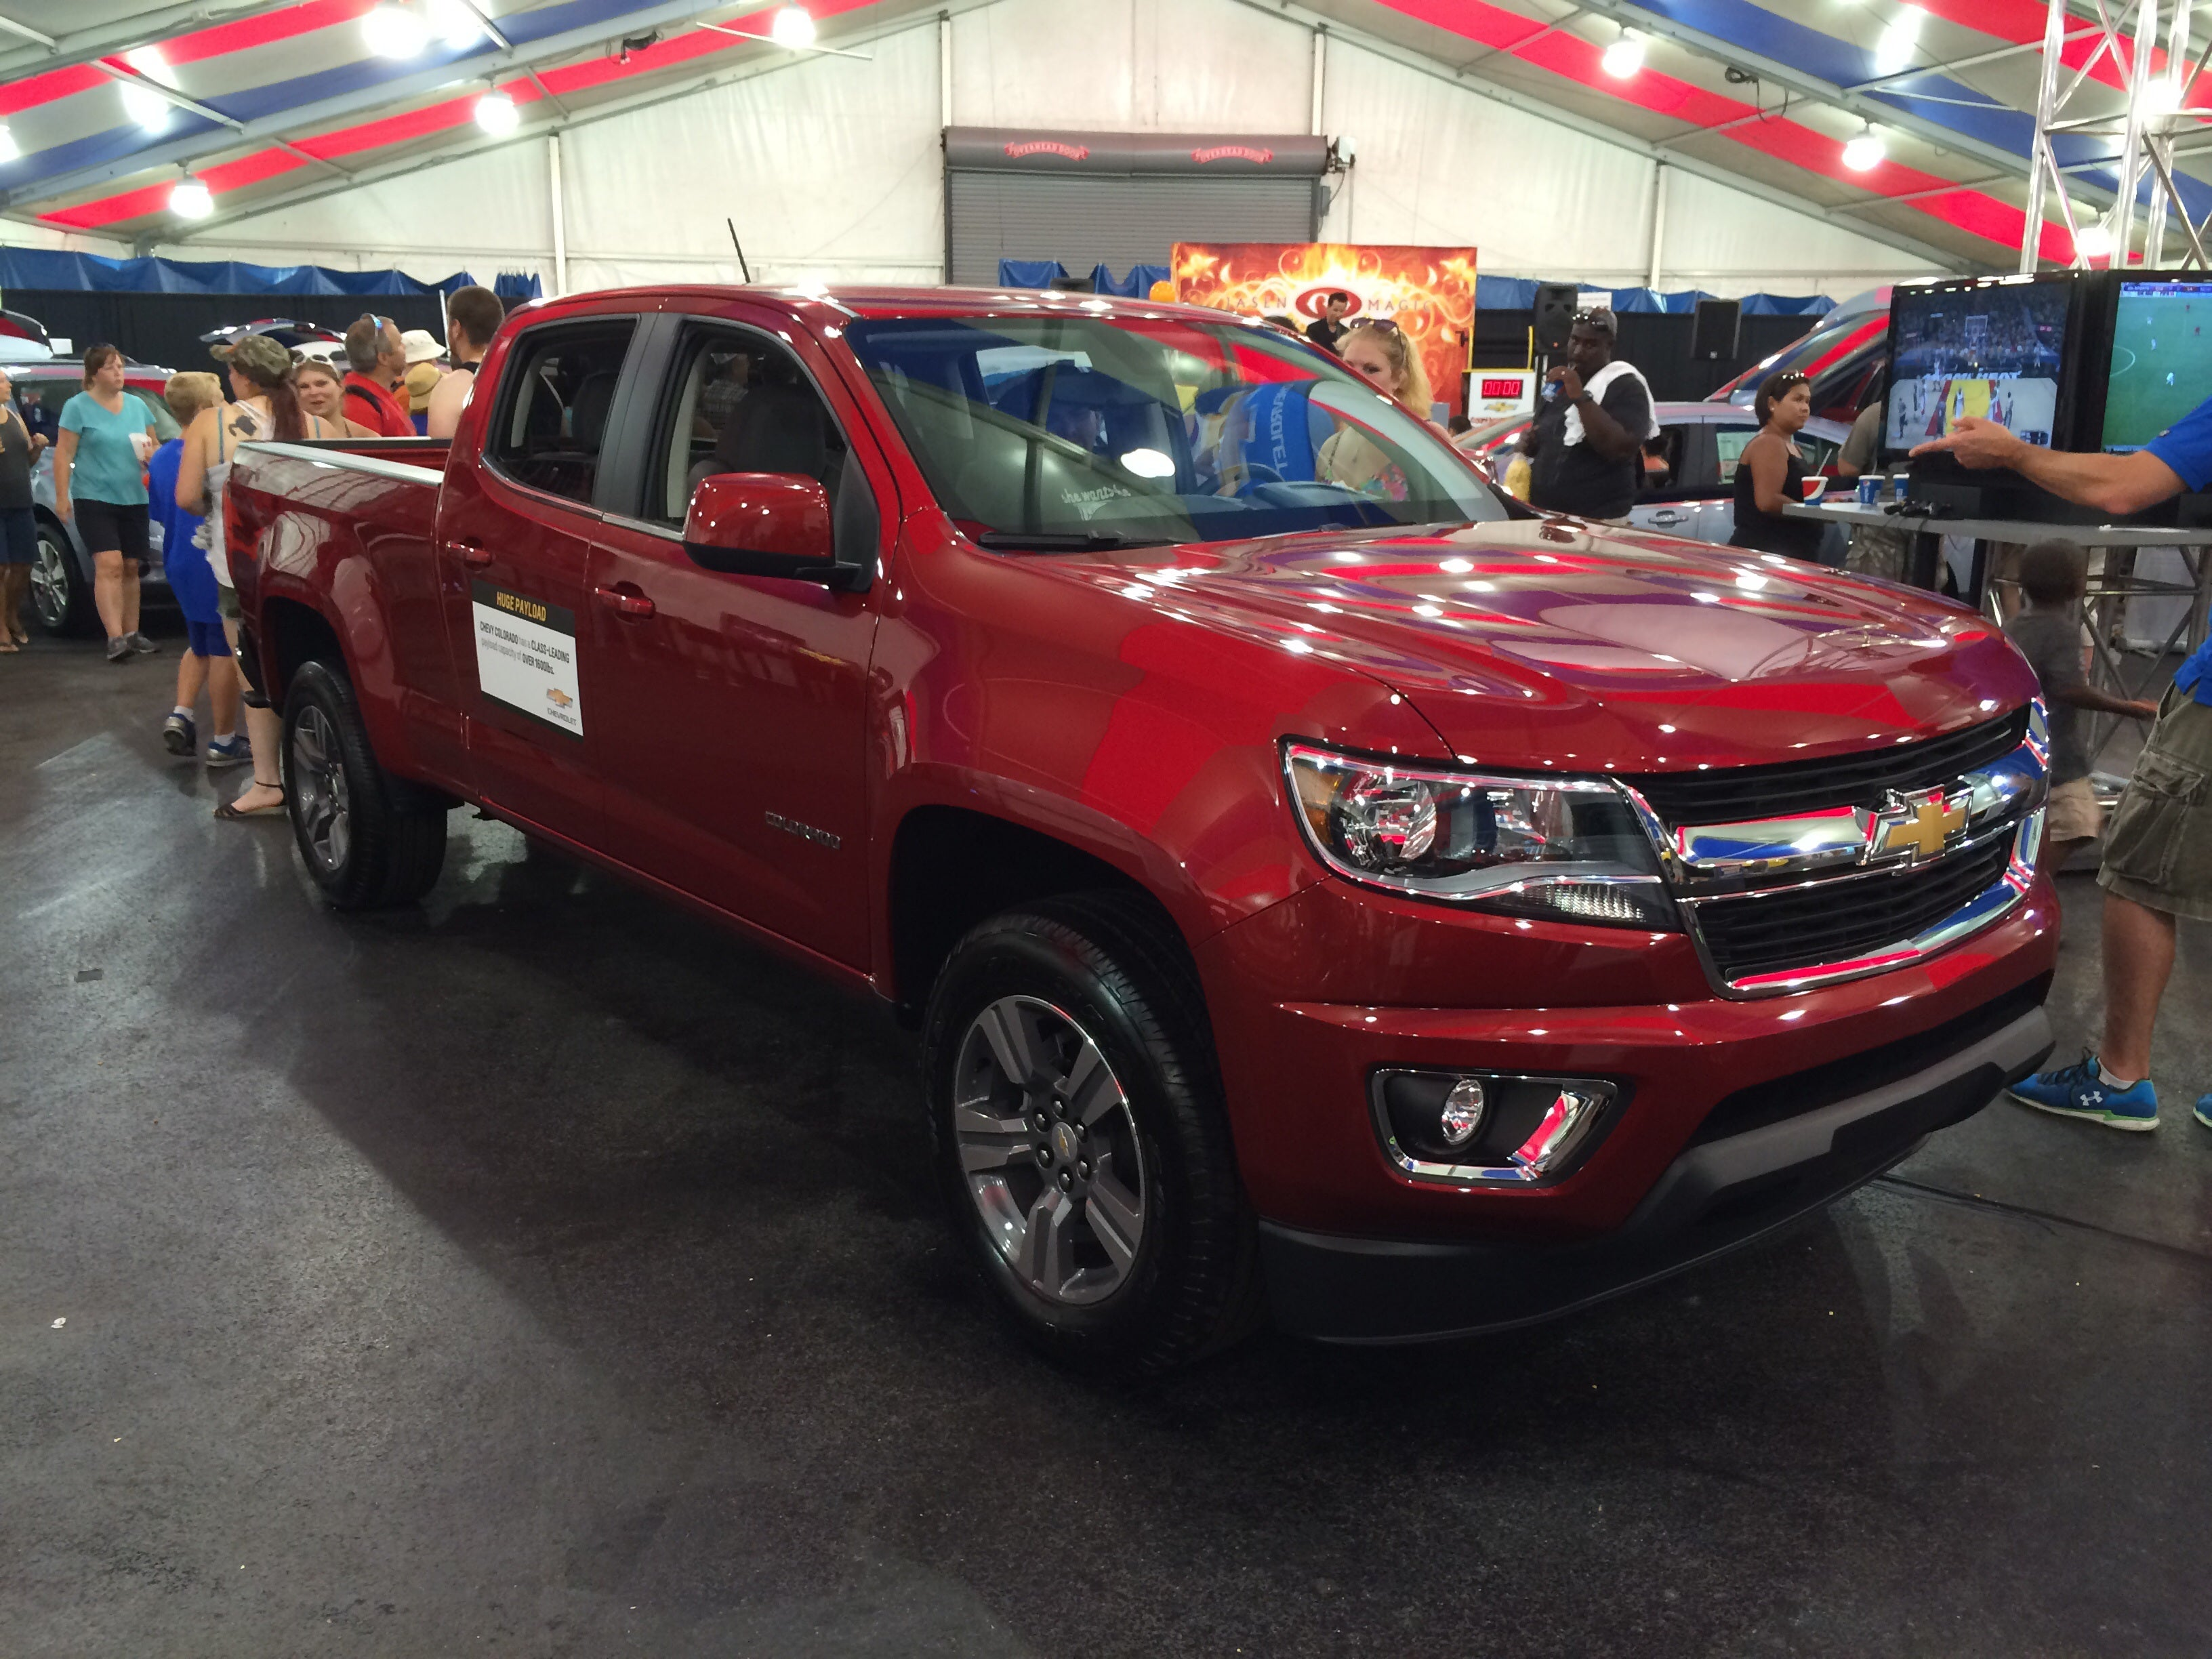 Much to my surprise inside the main display tent was an unlocked (and more importantly unguarded) 2015 Chevy Colorado. & Inside the 2015 Chevrolet Colorado